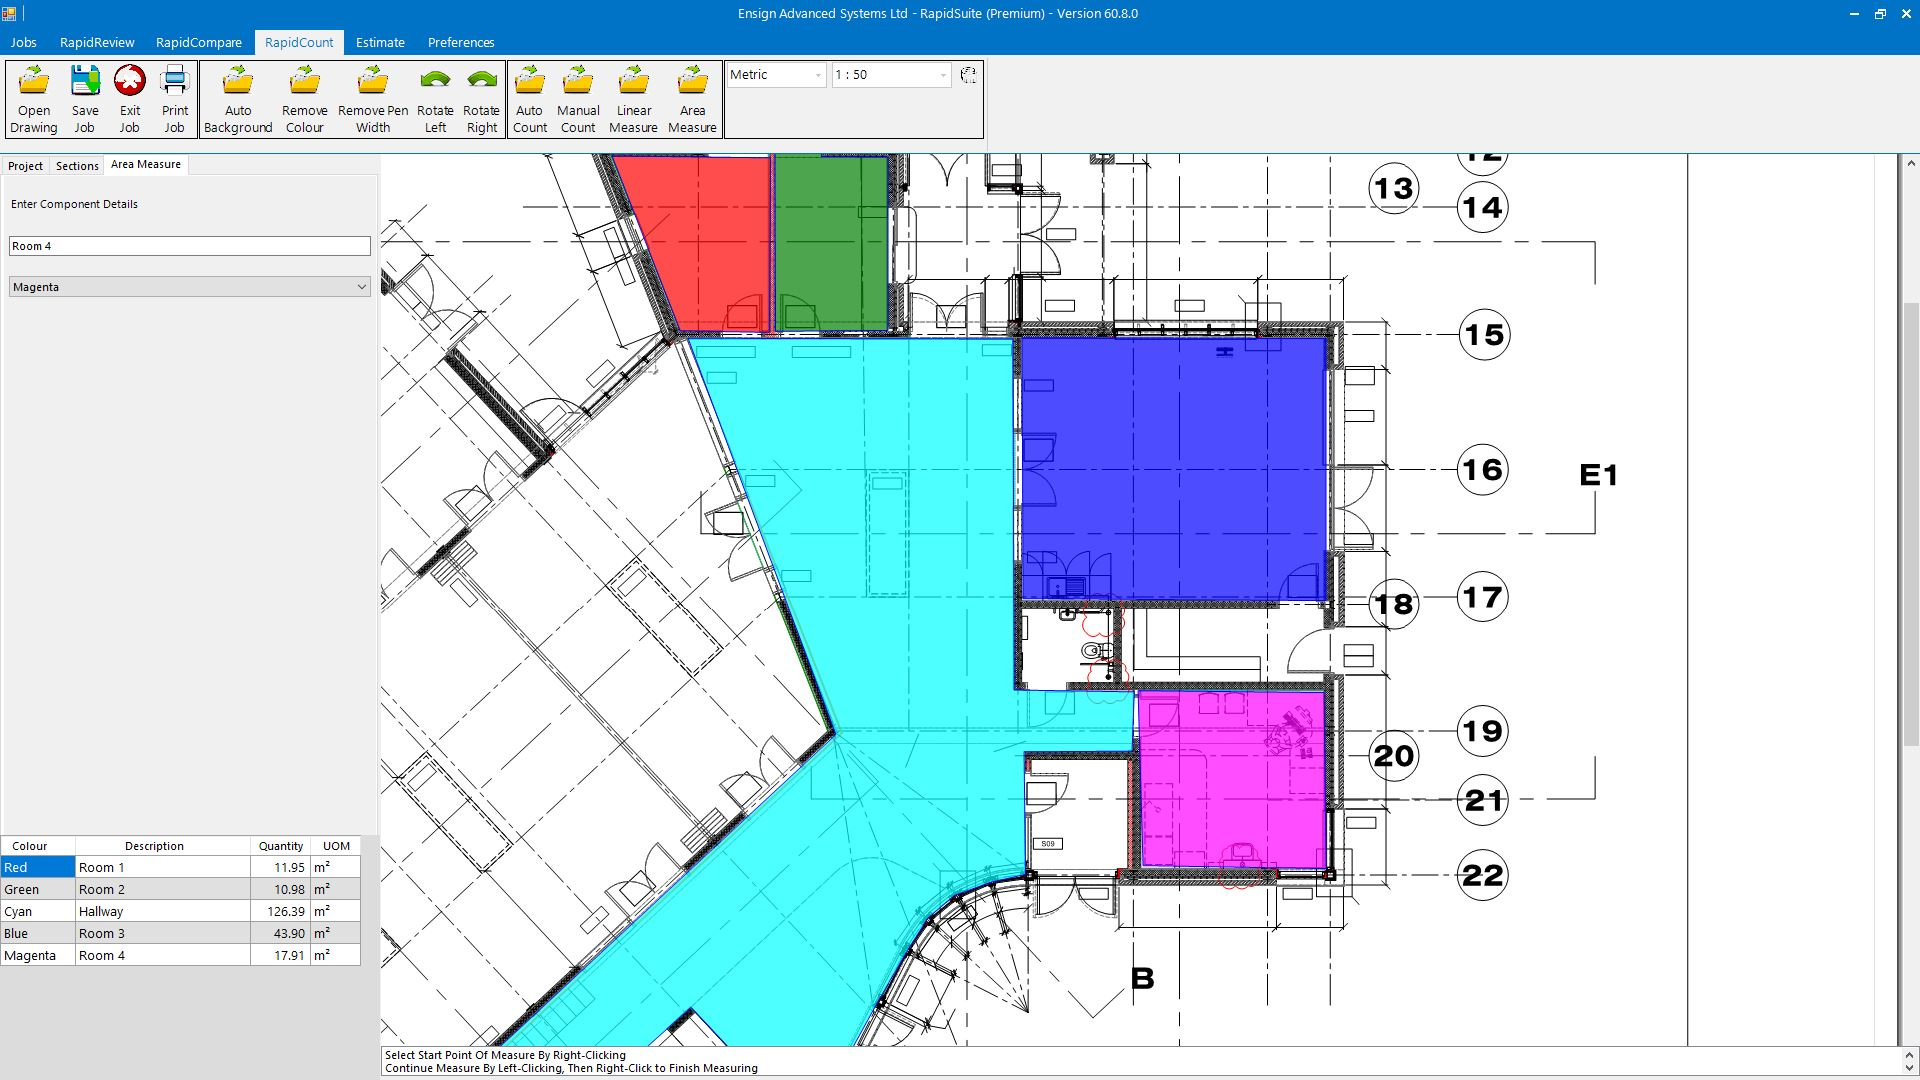 Construction Estimating And Takeoff Quotes Software